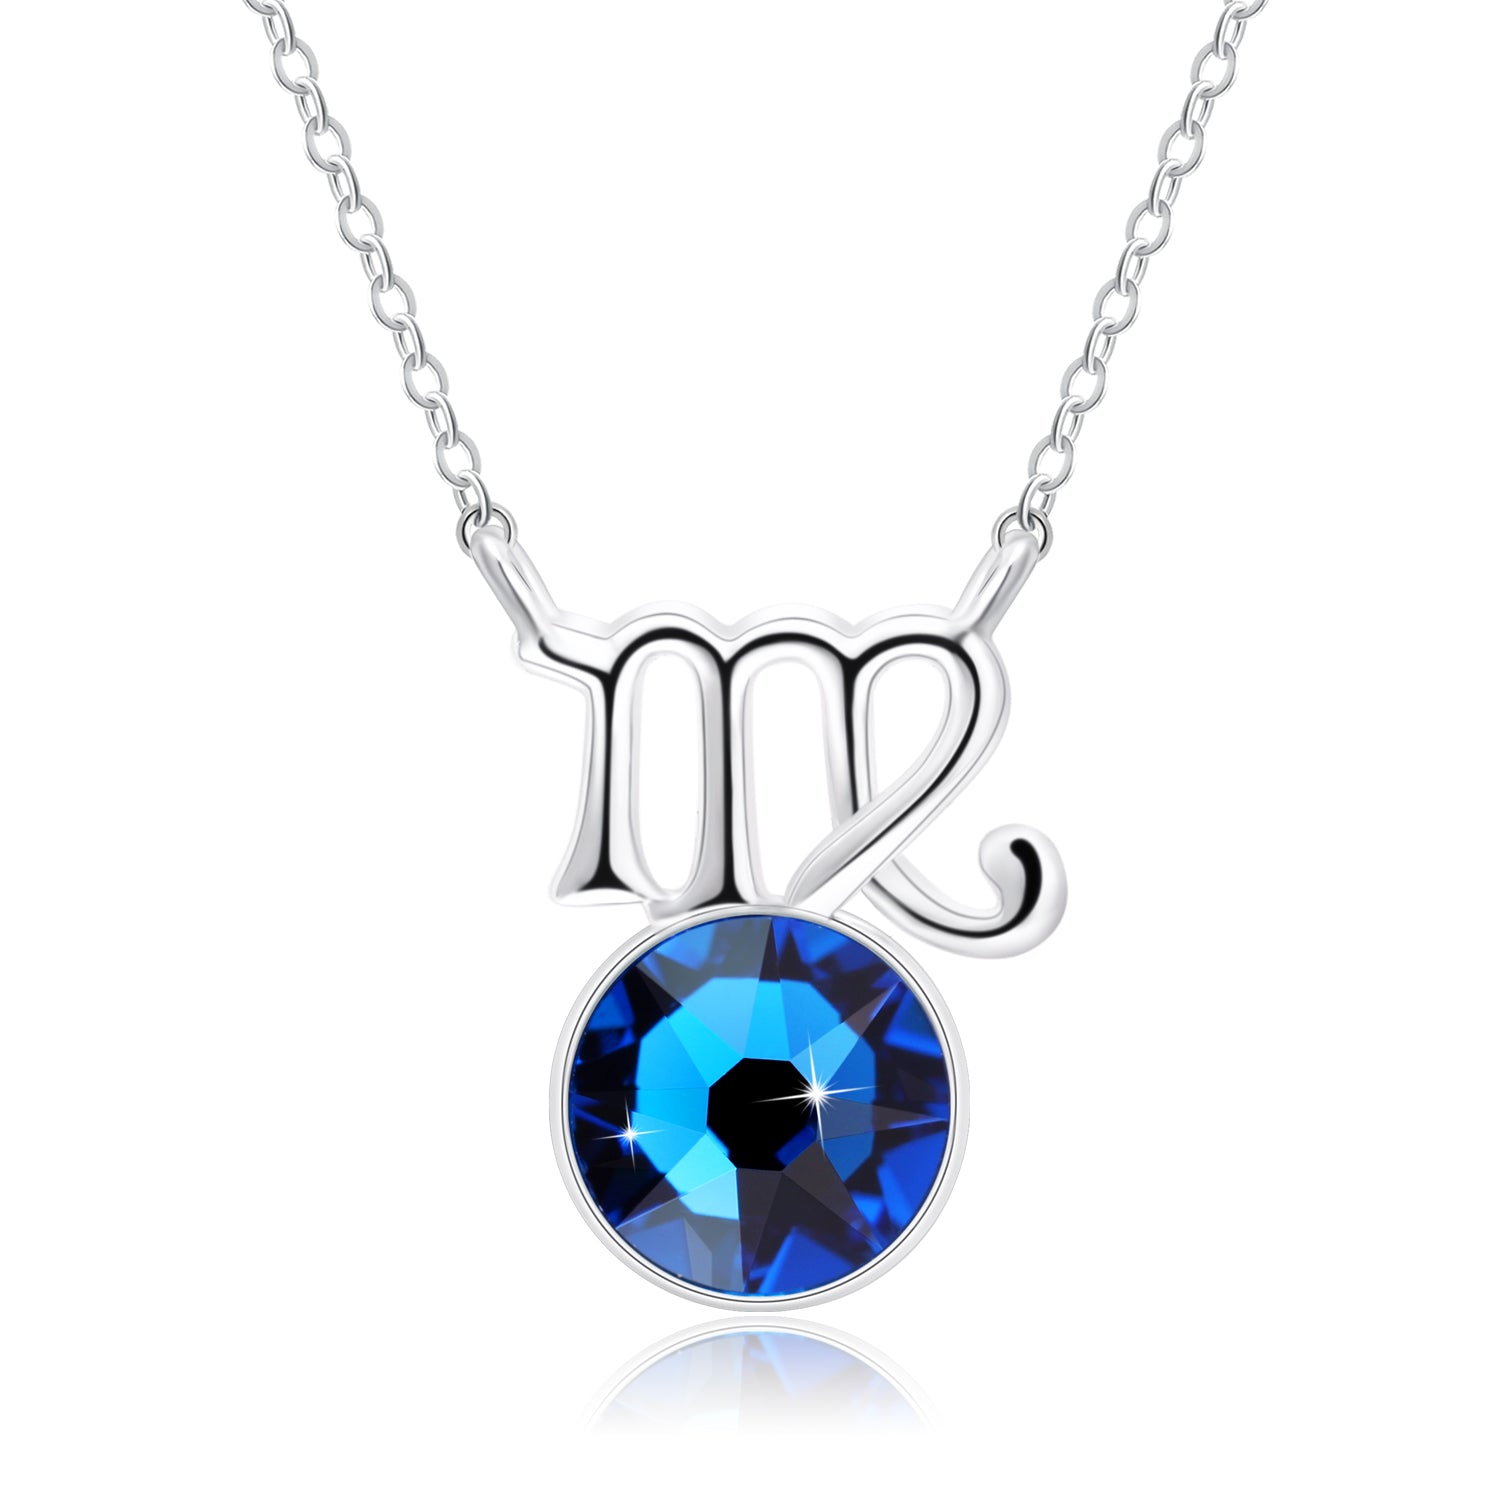 last line necklace virgo diamond products collar the zodiac